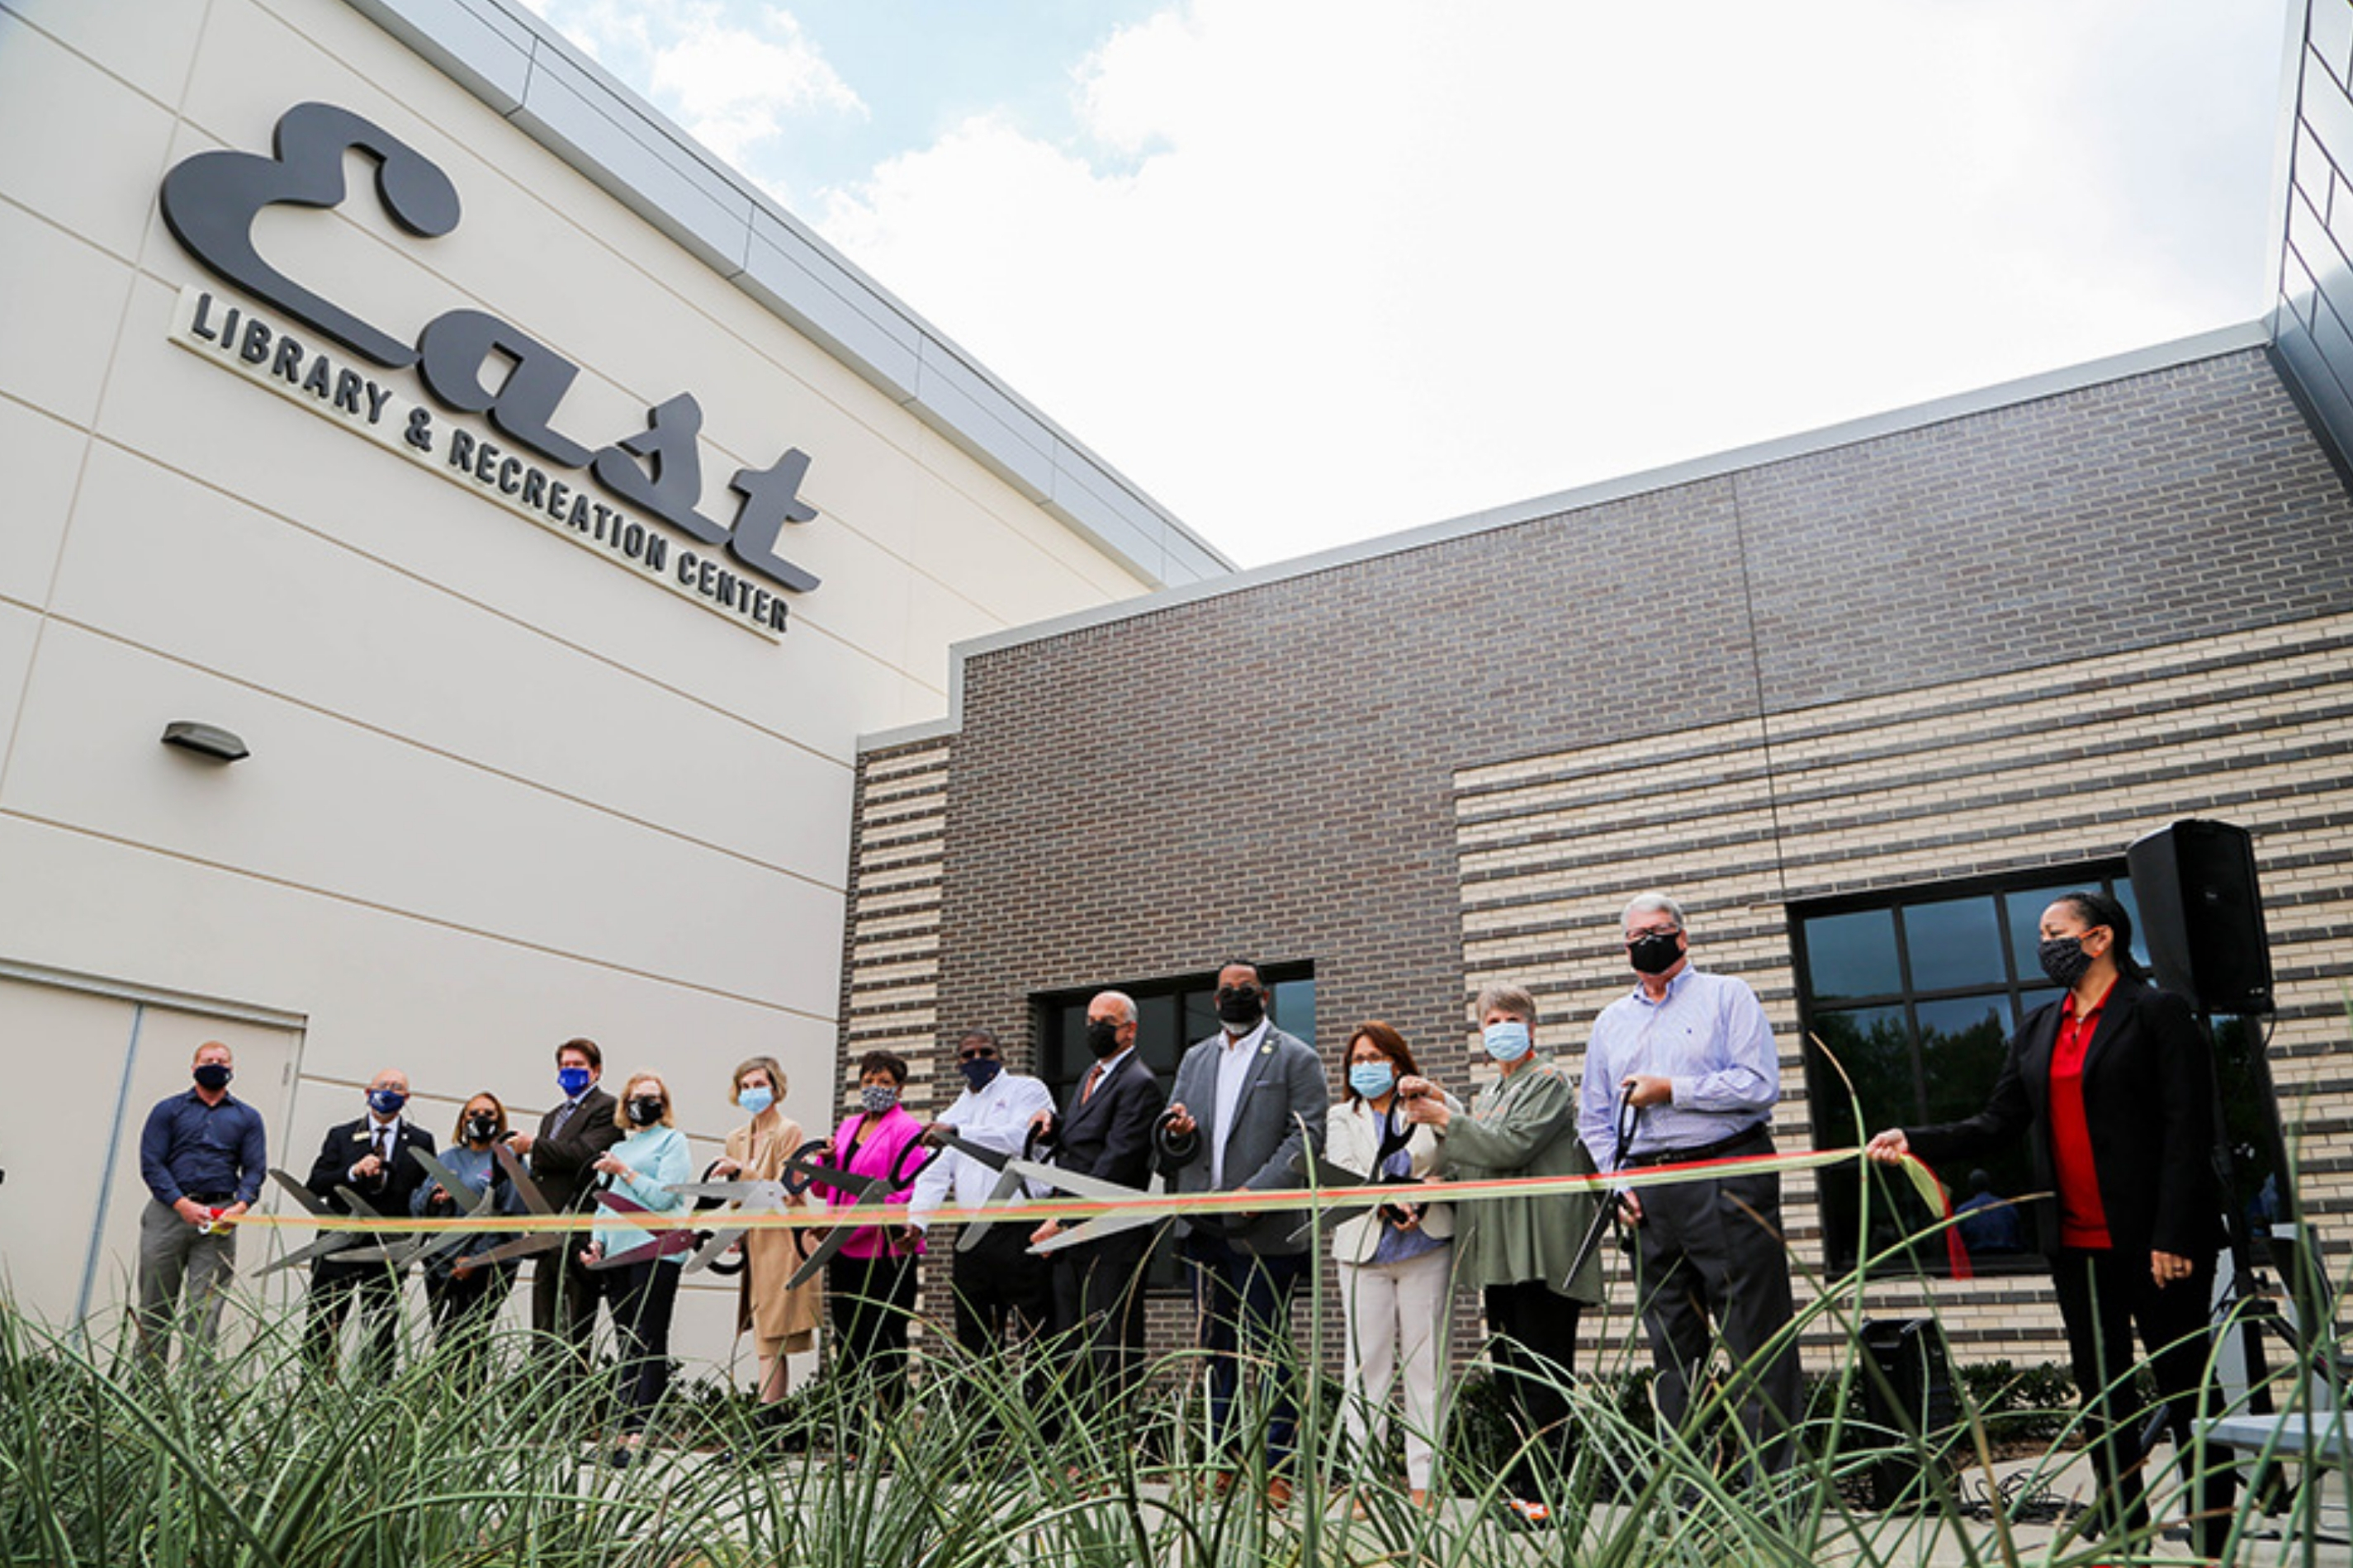 City Celebrates Opening of East Library and Recreation Center in East Arlington